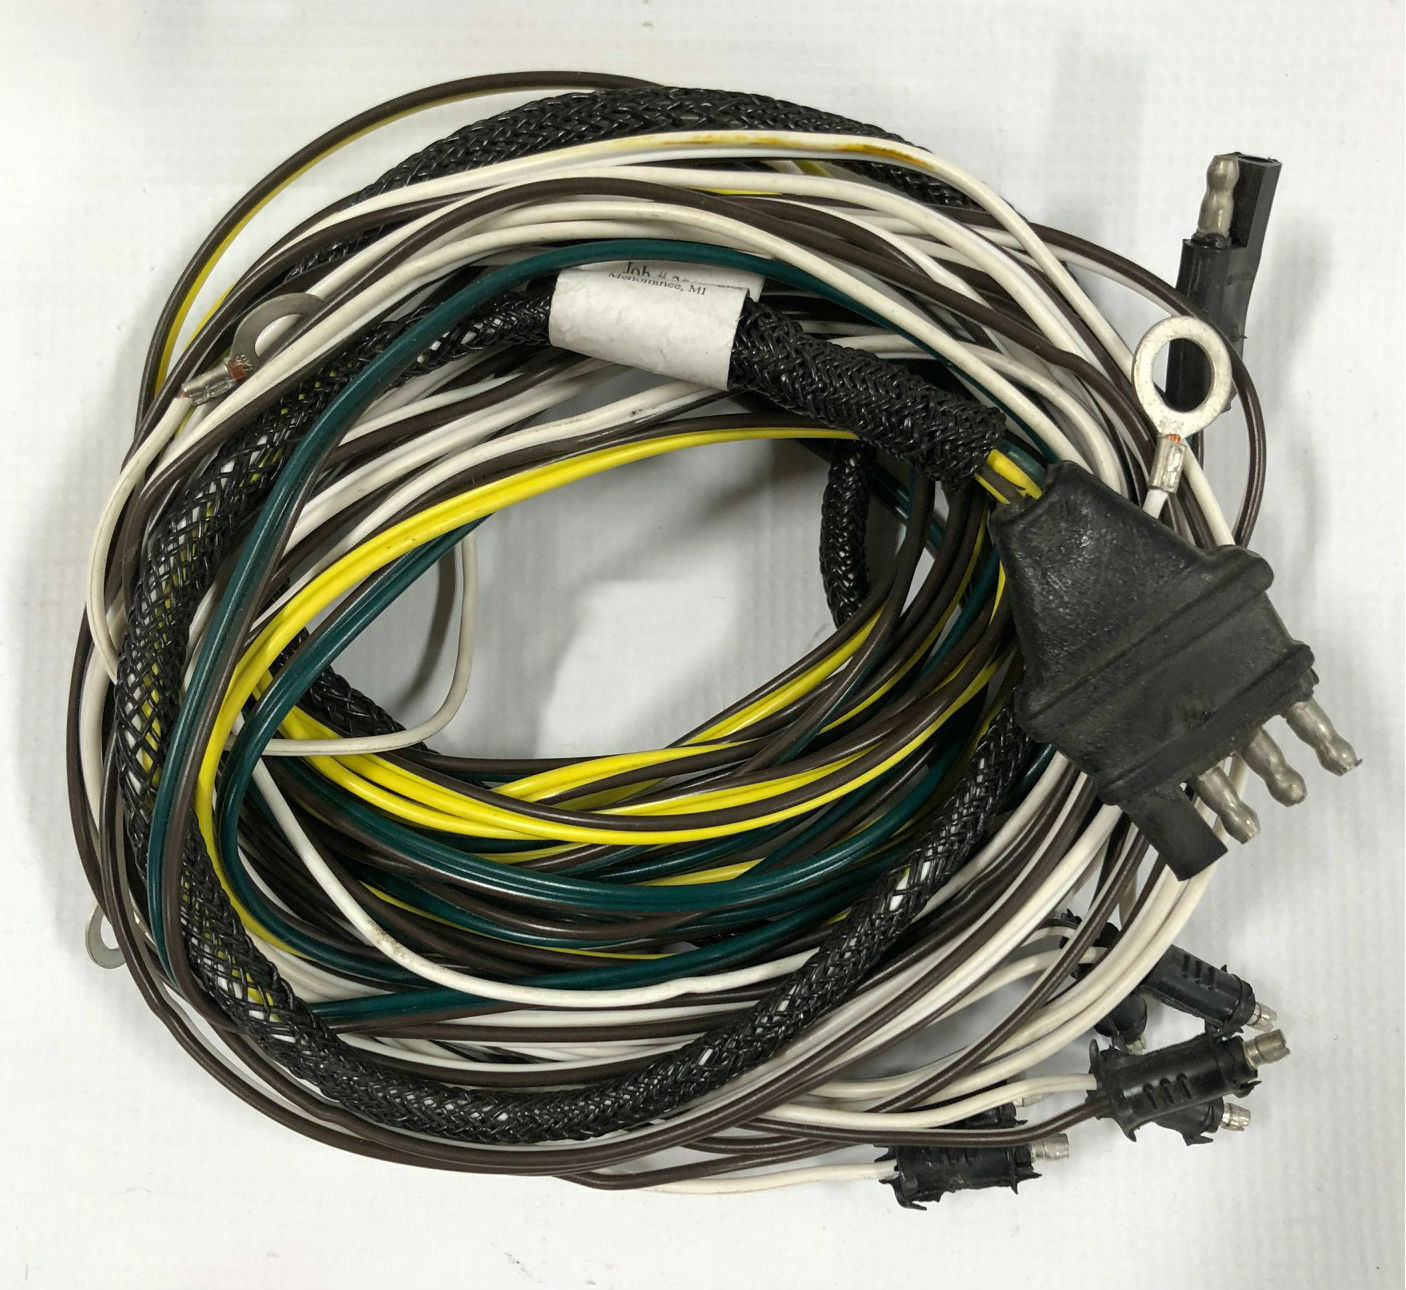 Triton 07051 Xtv Trailer Wire Harness Ebay Wiring Diagram For Adams Norton Secured Powered By Verisign